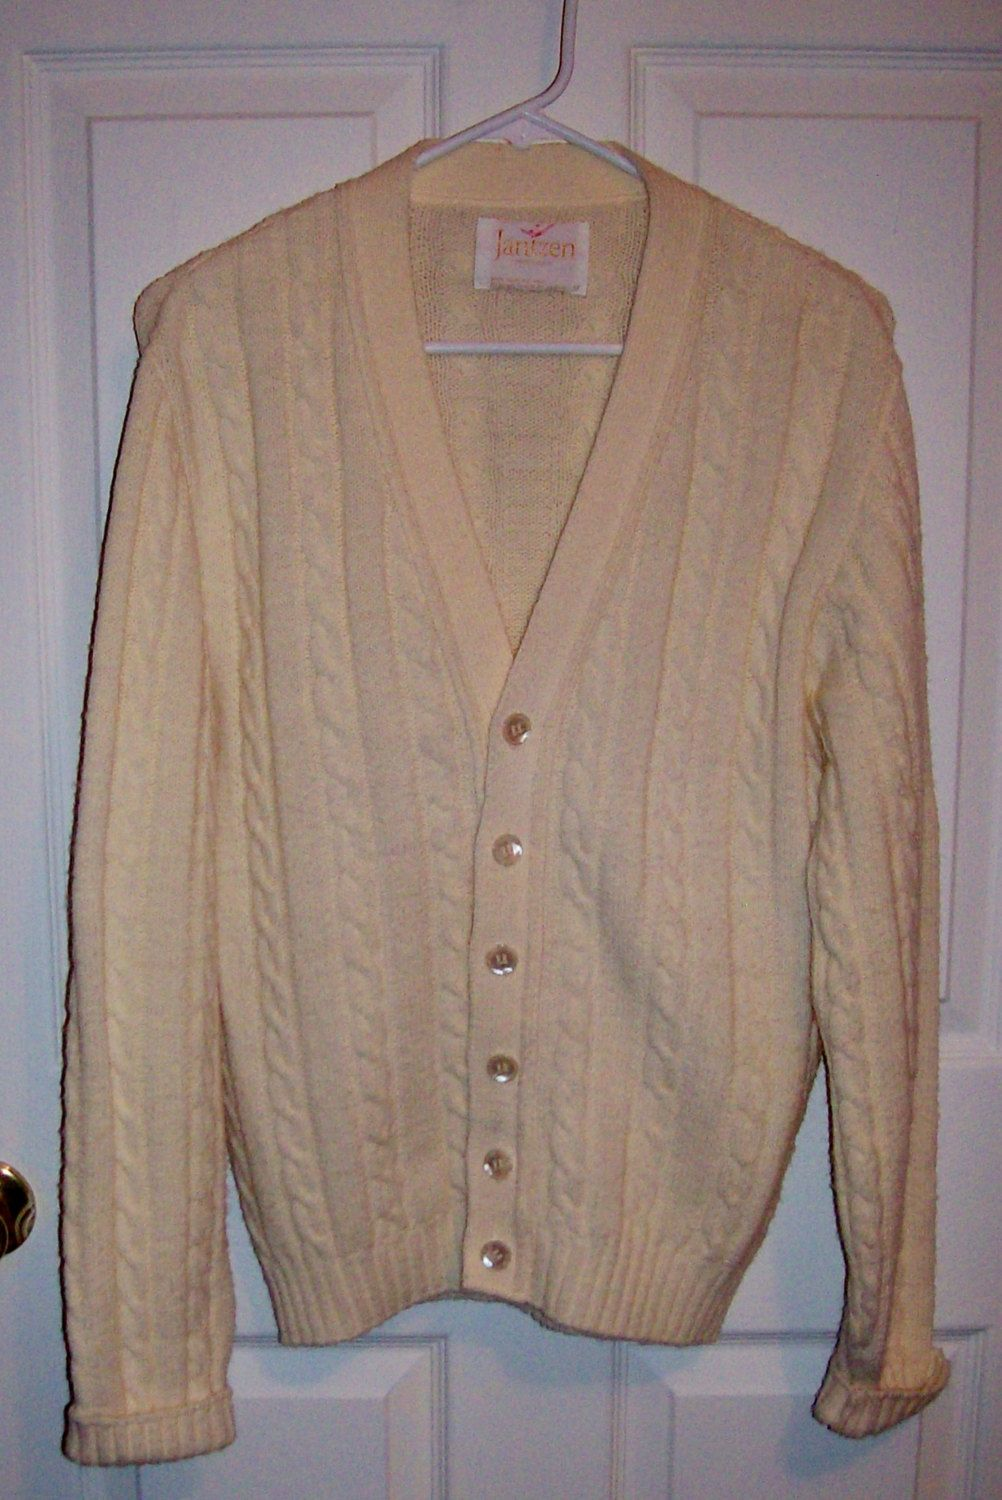 Vintage 1960s Men's Off White Cardigan Golf or Tennis Sweater by ...